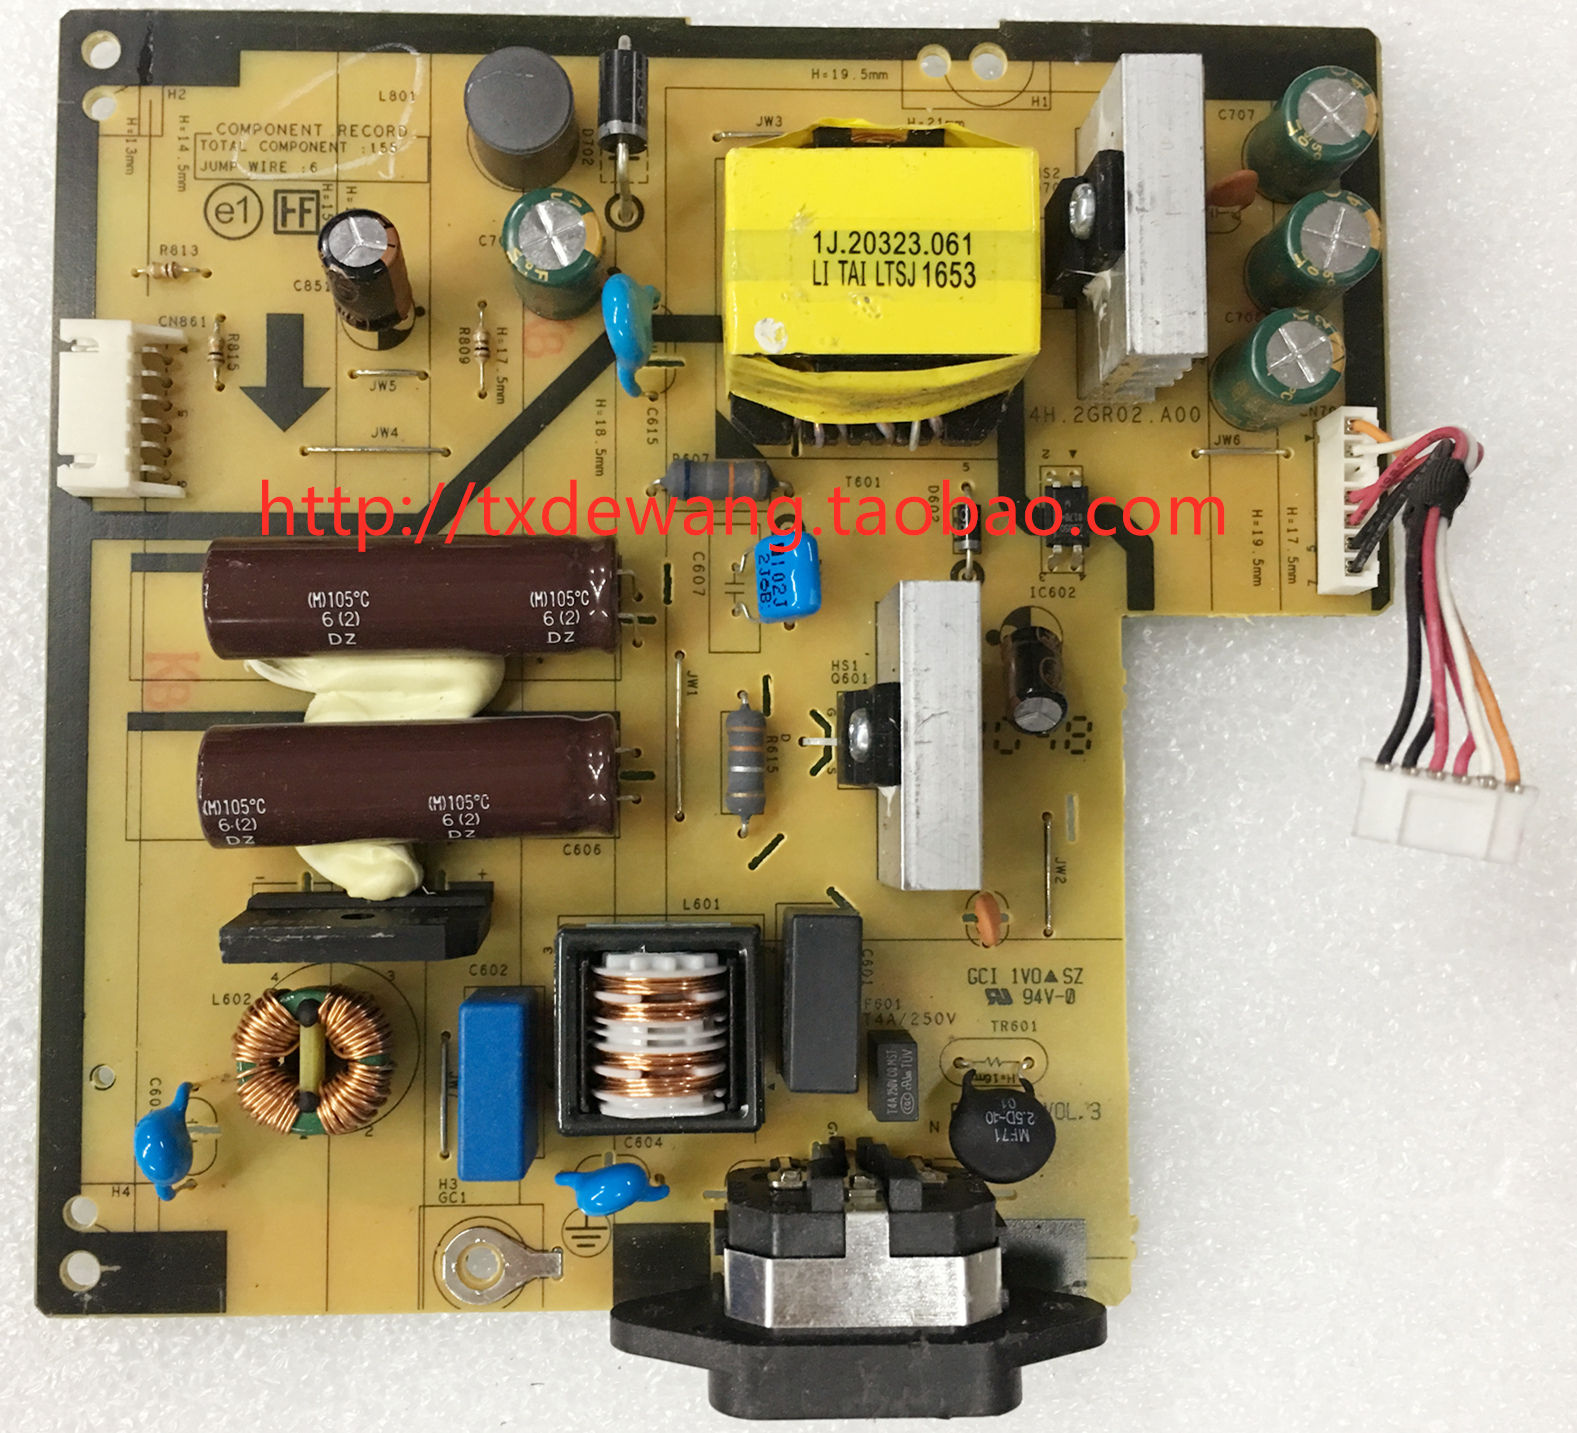 dell U2415B U2415 power supply board 4H.2GR02.A00